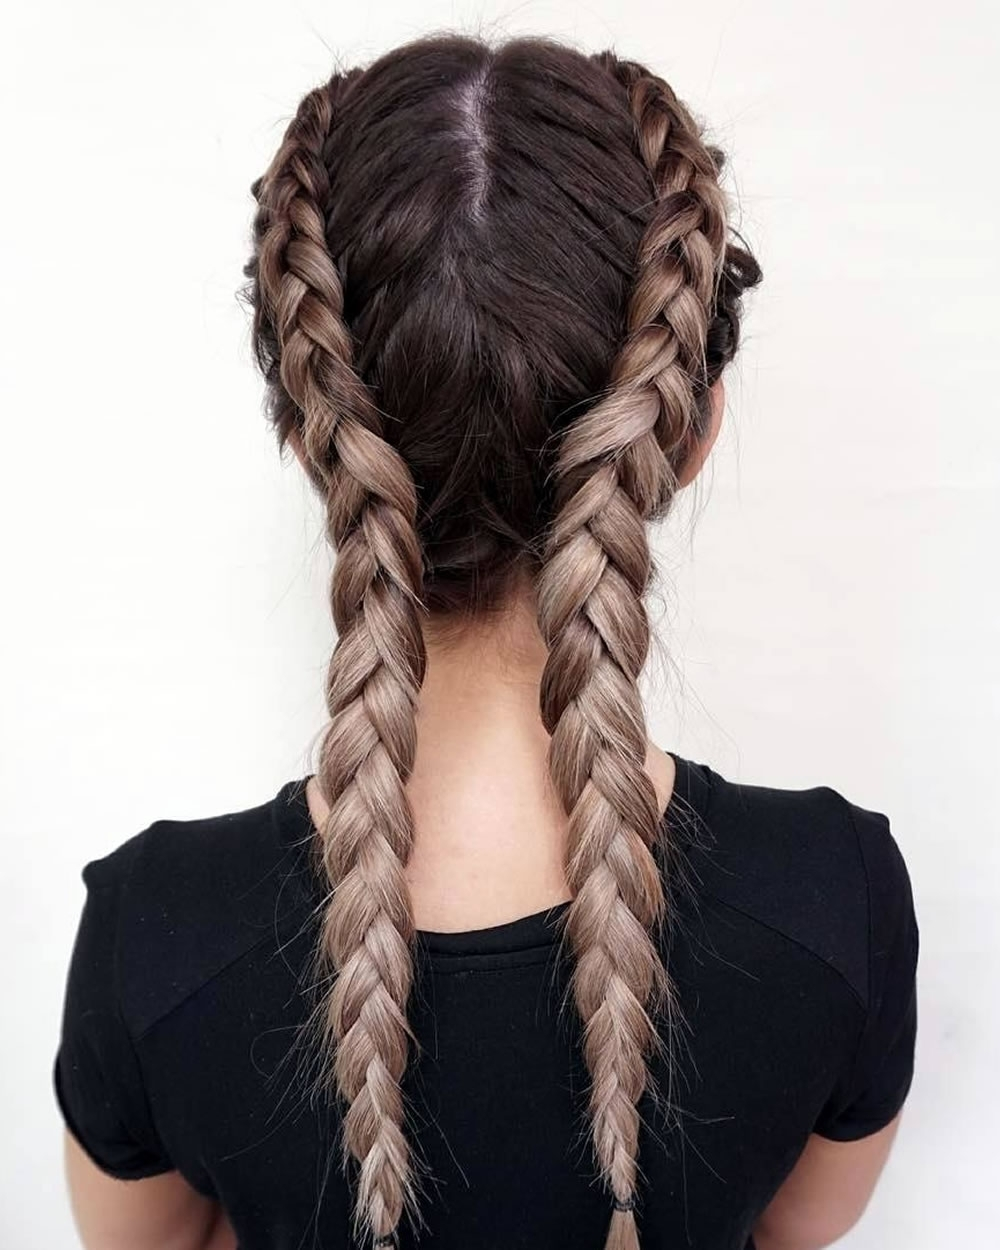 2019 Popular Two French Braids And Side Fishtail